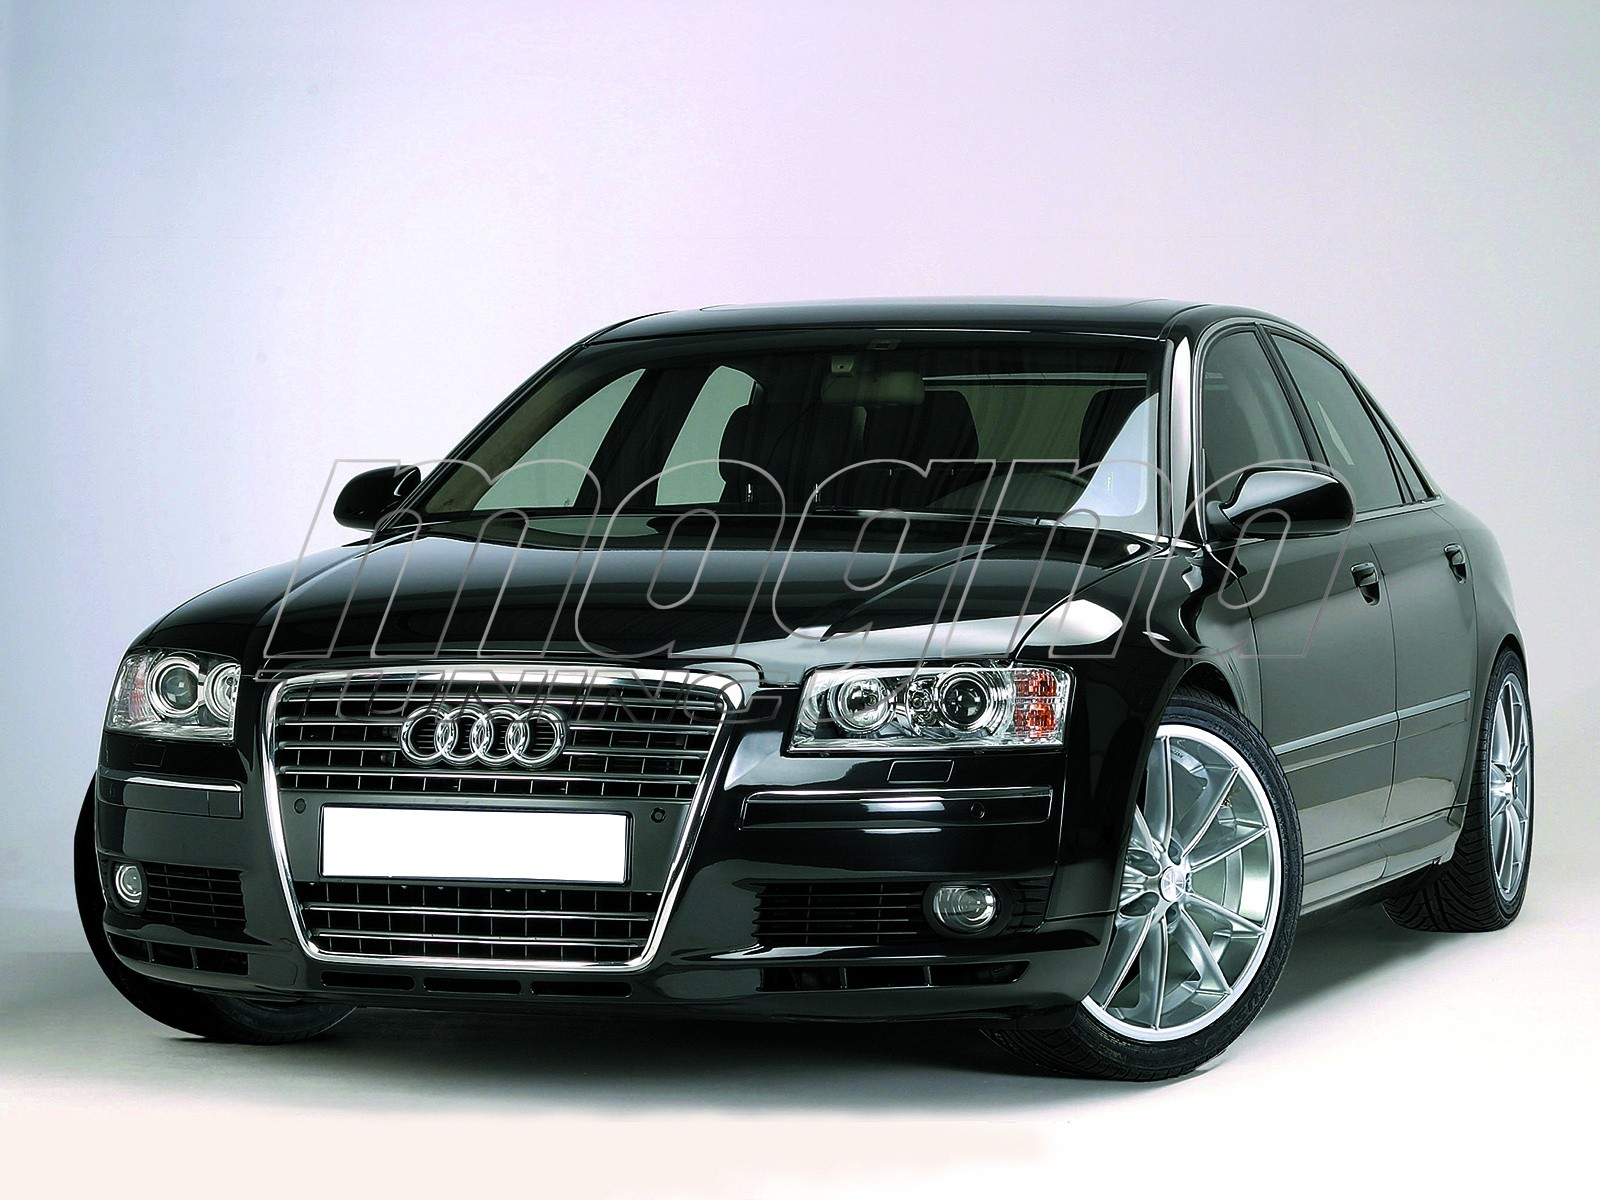 audi a8 4e pre facelift exclusive body kit. Black Bedroom Furniture Sets. Home Design Ideas